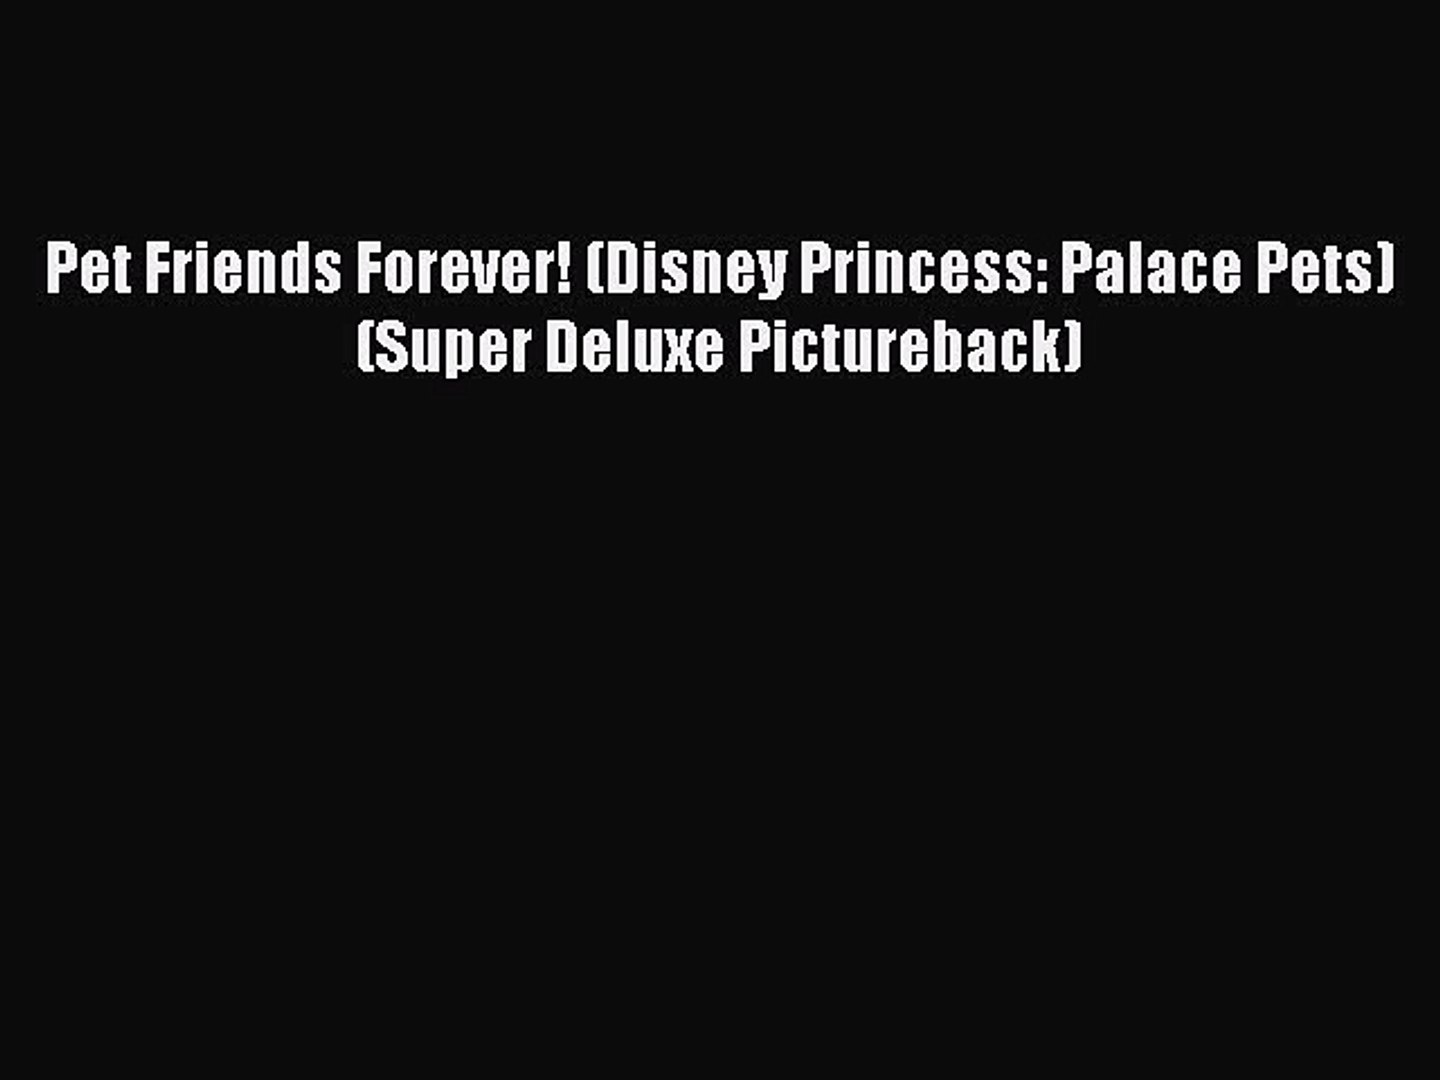 Read Pet Friends Forever! (Disney Princess: Palace Pets) (Super Deluxe Pictureback) Ebook Free